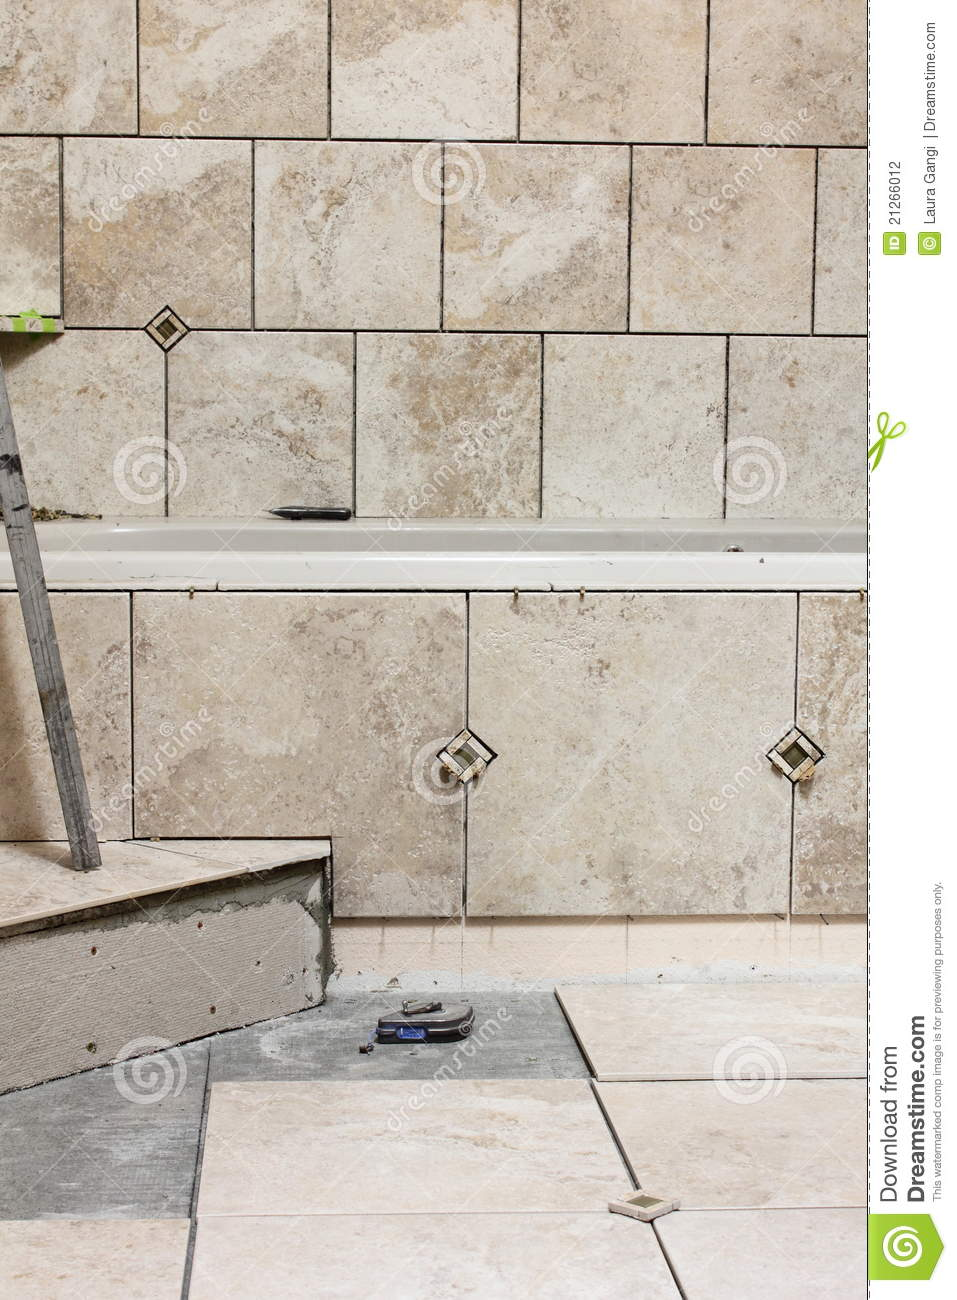 Bathroom Tile Remodel Project Stock Photography Image